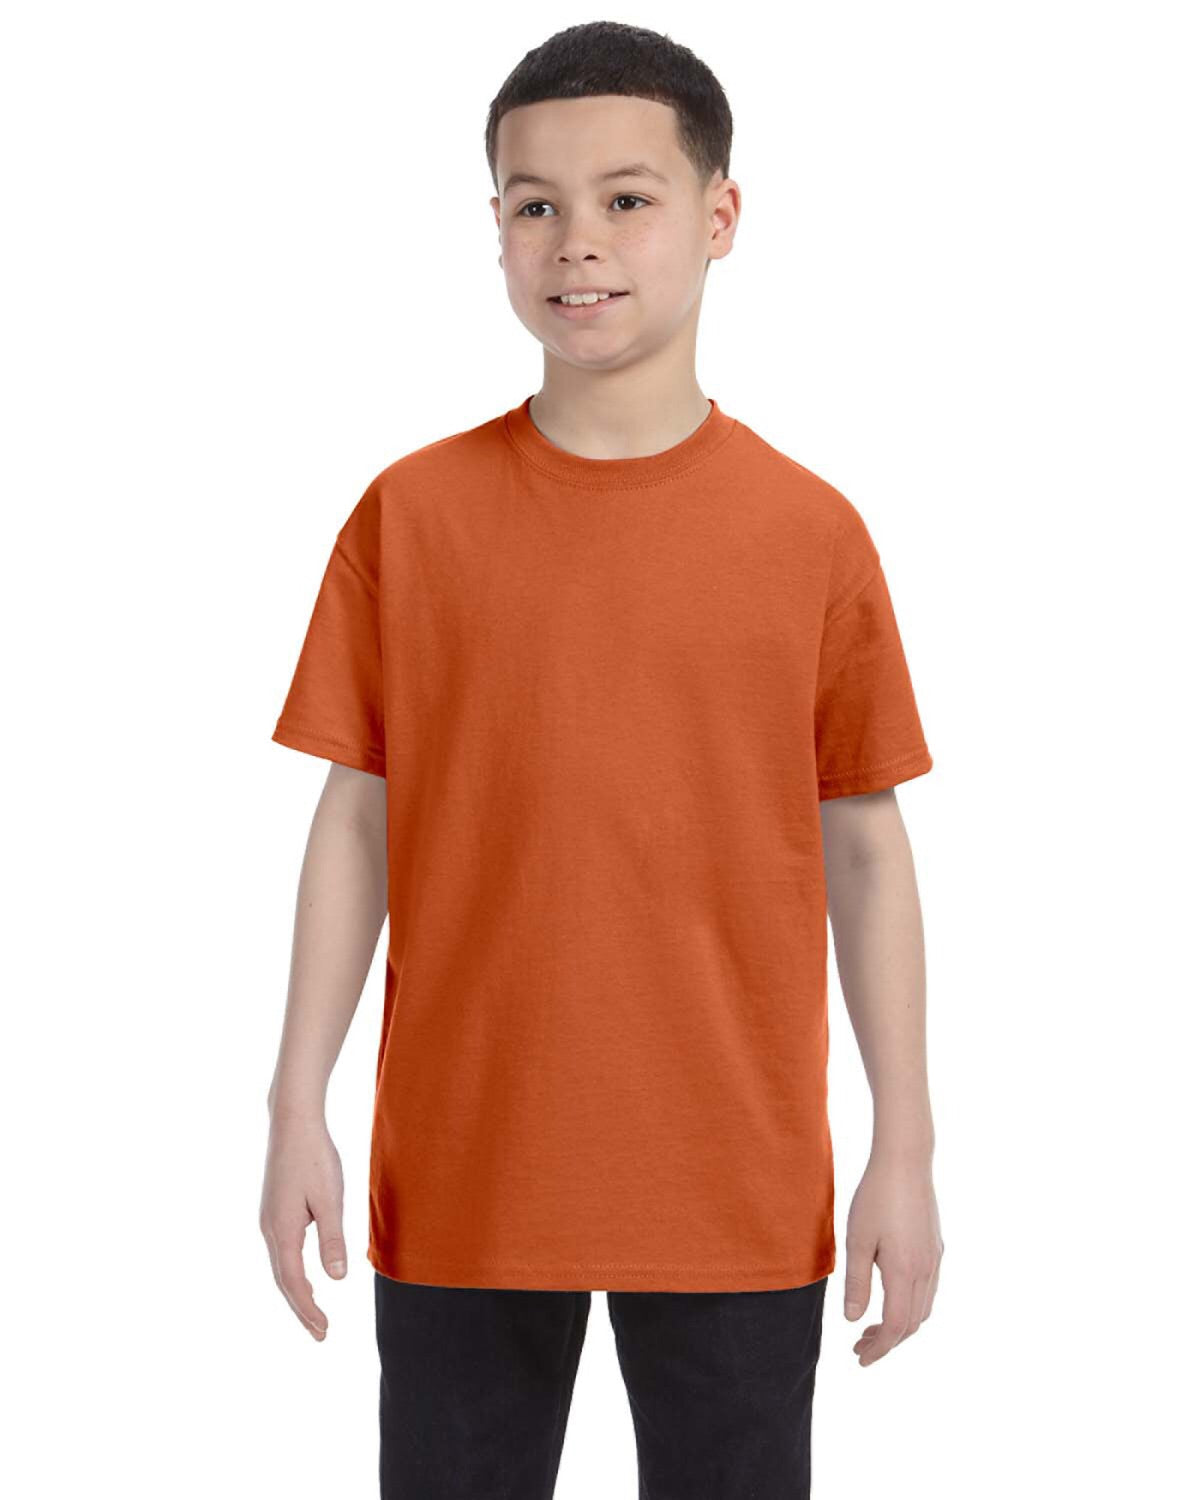 Gildan Youth Unisex T-Shirt